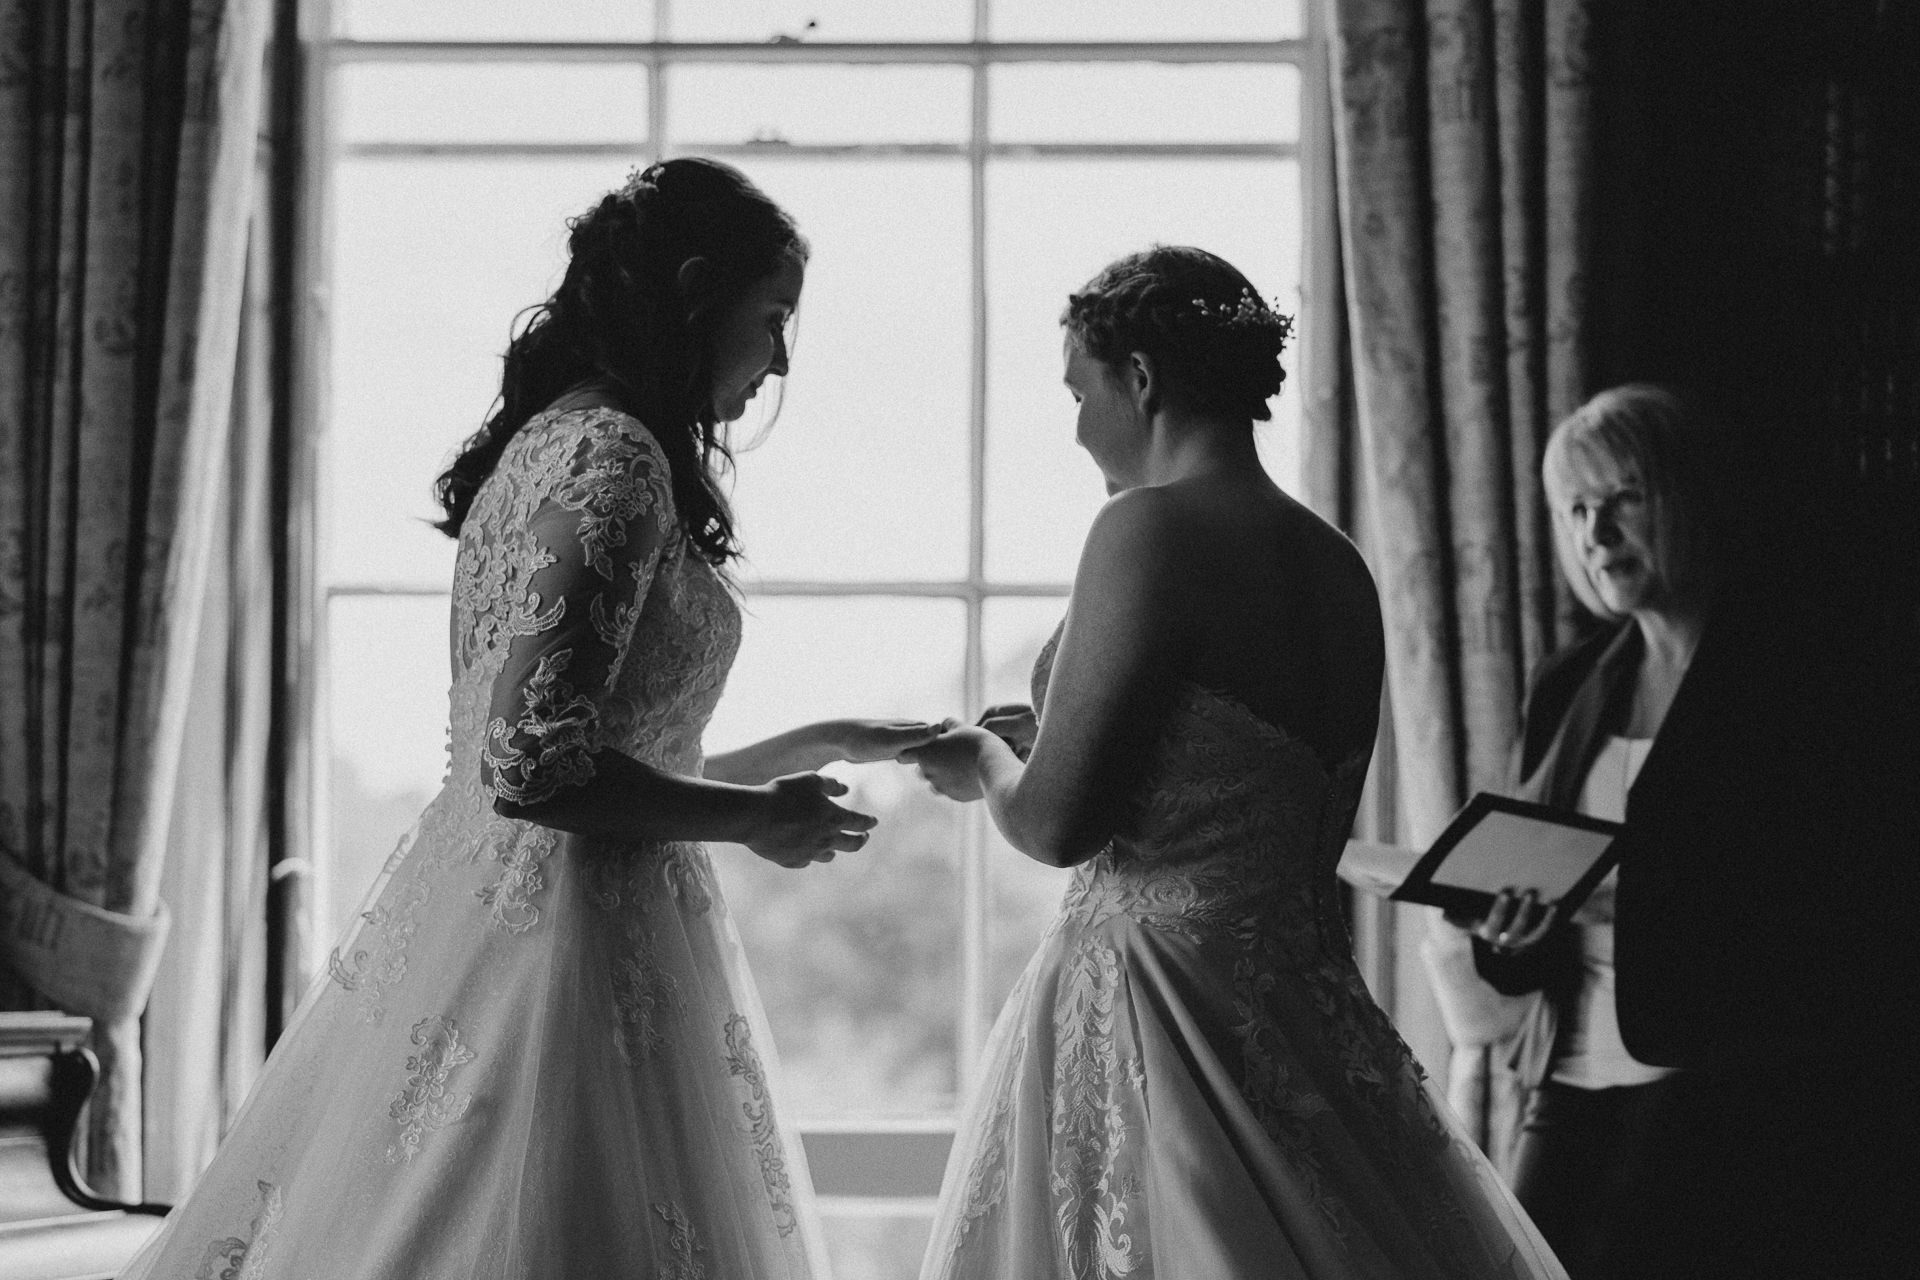 0055-DEVON-SOMERSET-WEDDING-PHOTOGRAPHER-0269-BEST-OF-2019-LOUISE-MAY-DEVON-SOMERSET-WEDDING-PHOTOGRAPHY-LM1_5171